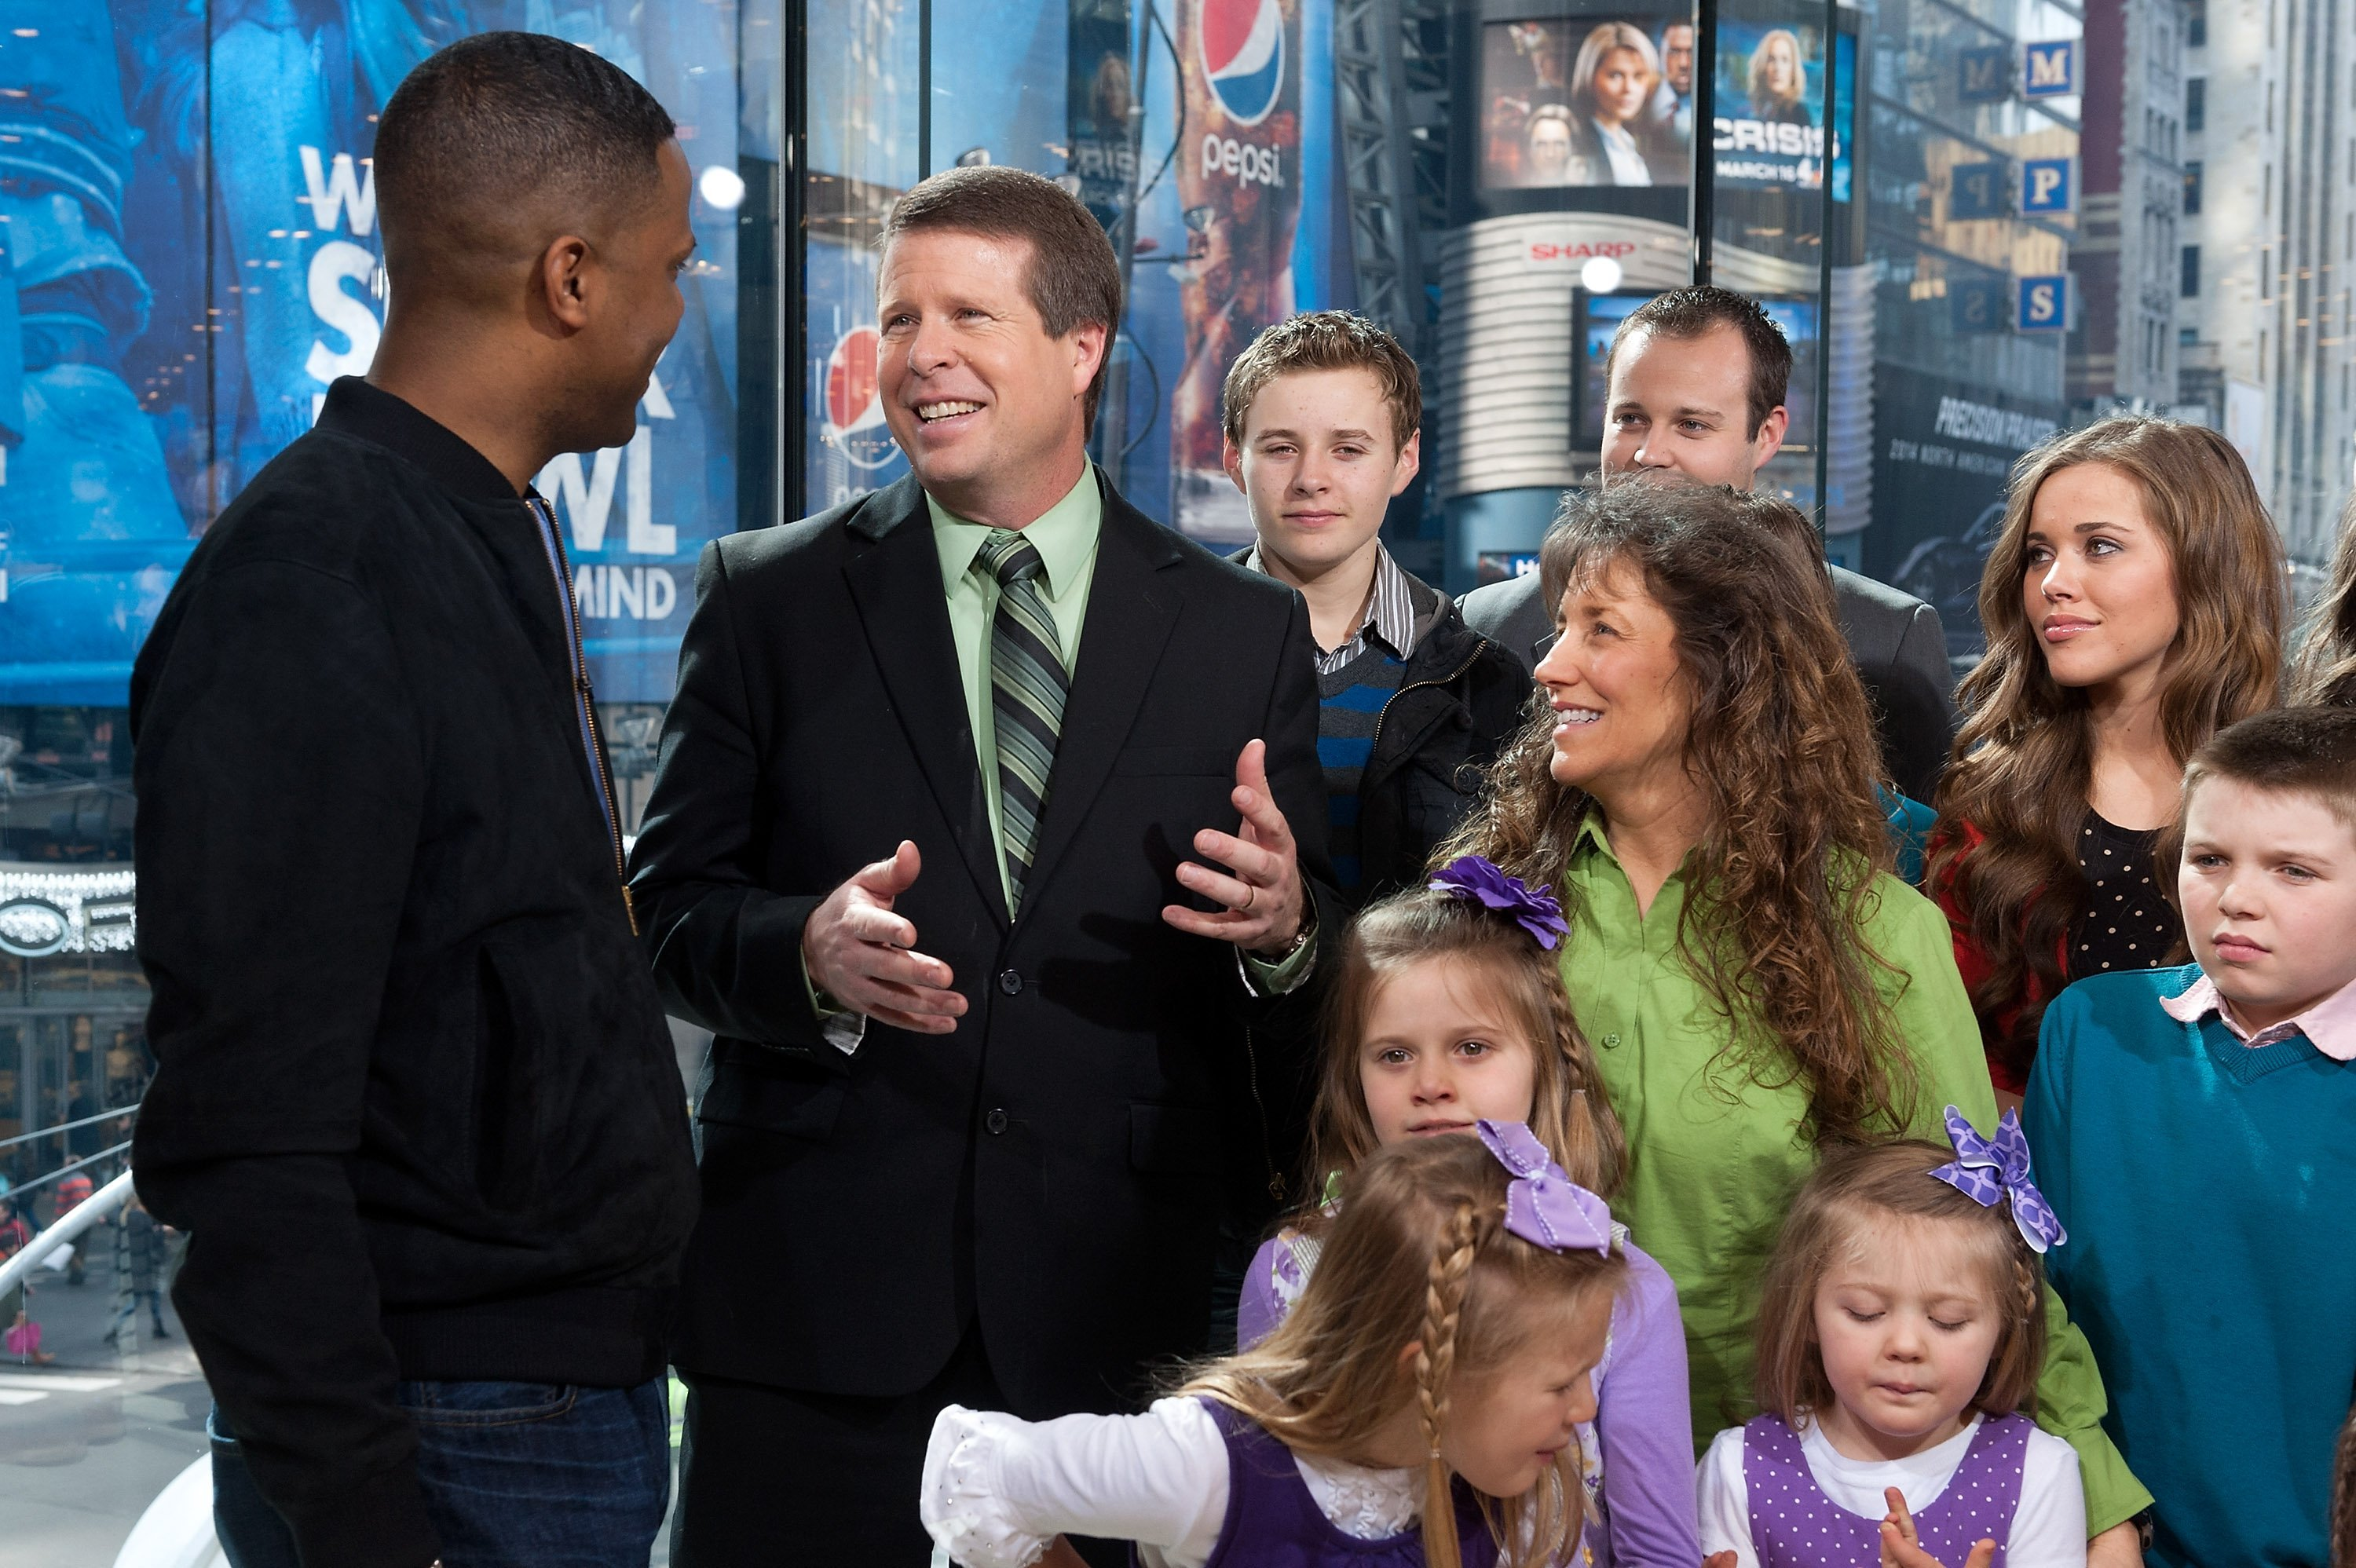 Jim Bob and Michelle Duggar with their kids. | Source: Getty Images